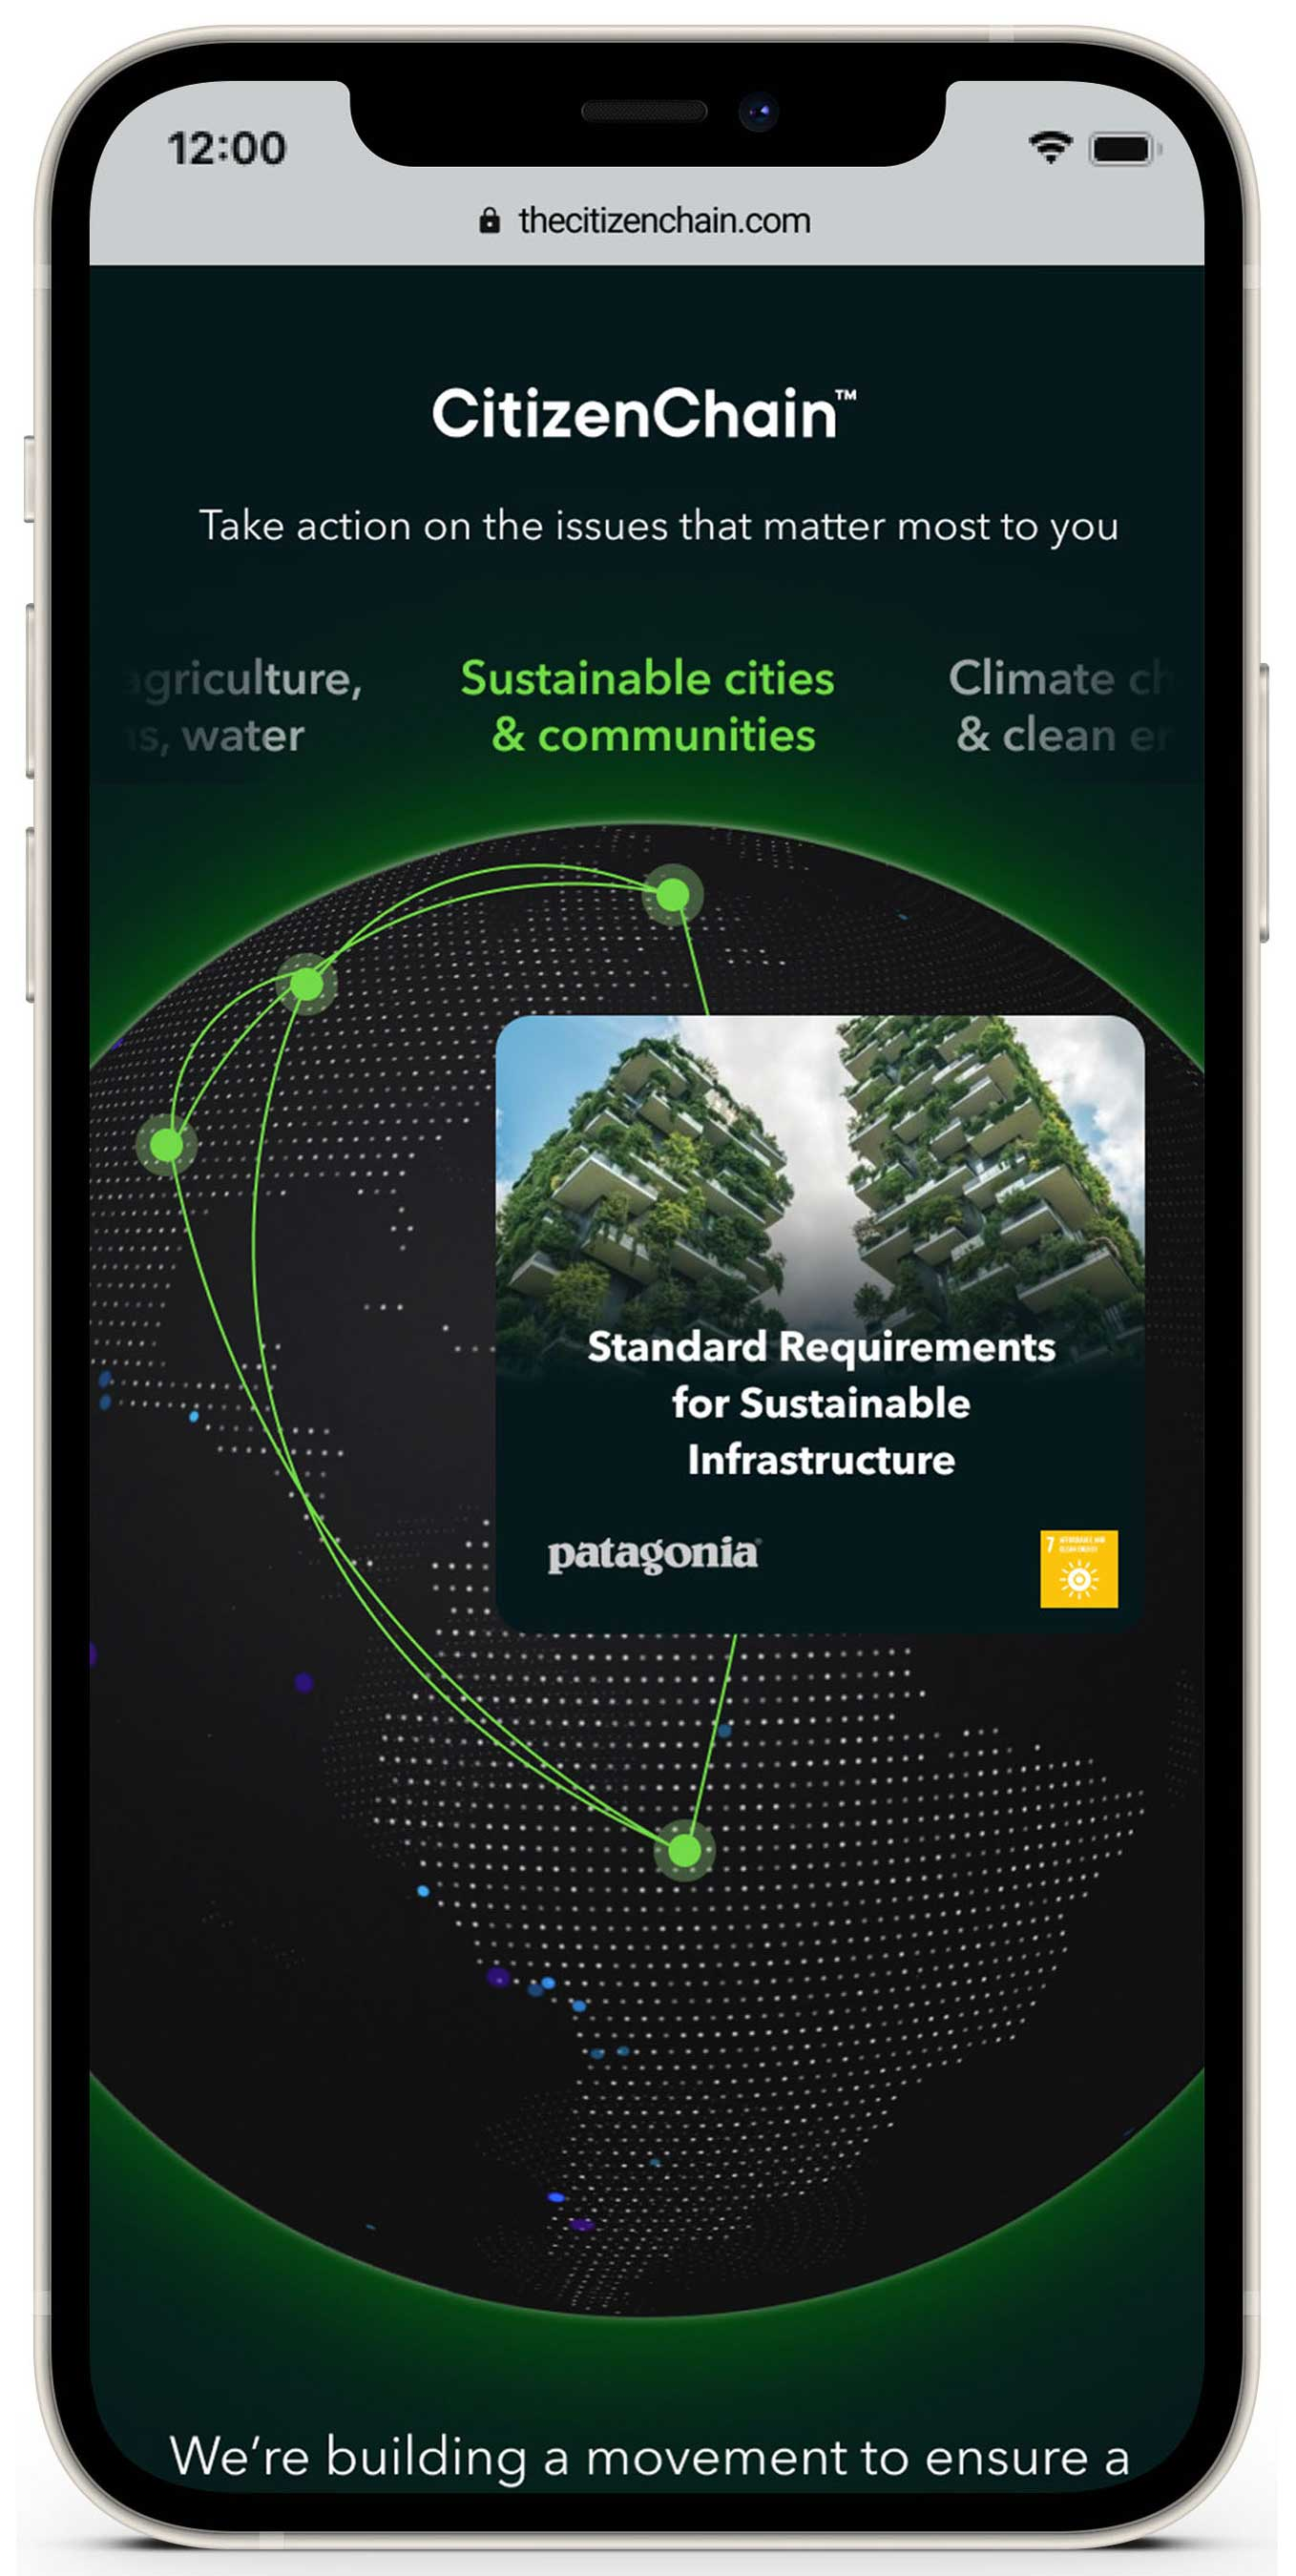 USCS CitizenChain™ is a new digital platform that gives people the opportunity to lend their voice to support the brands and organizations within the SustainChain community on the sustainability issues they care most about.